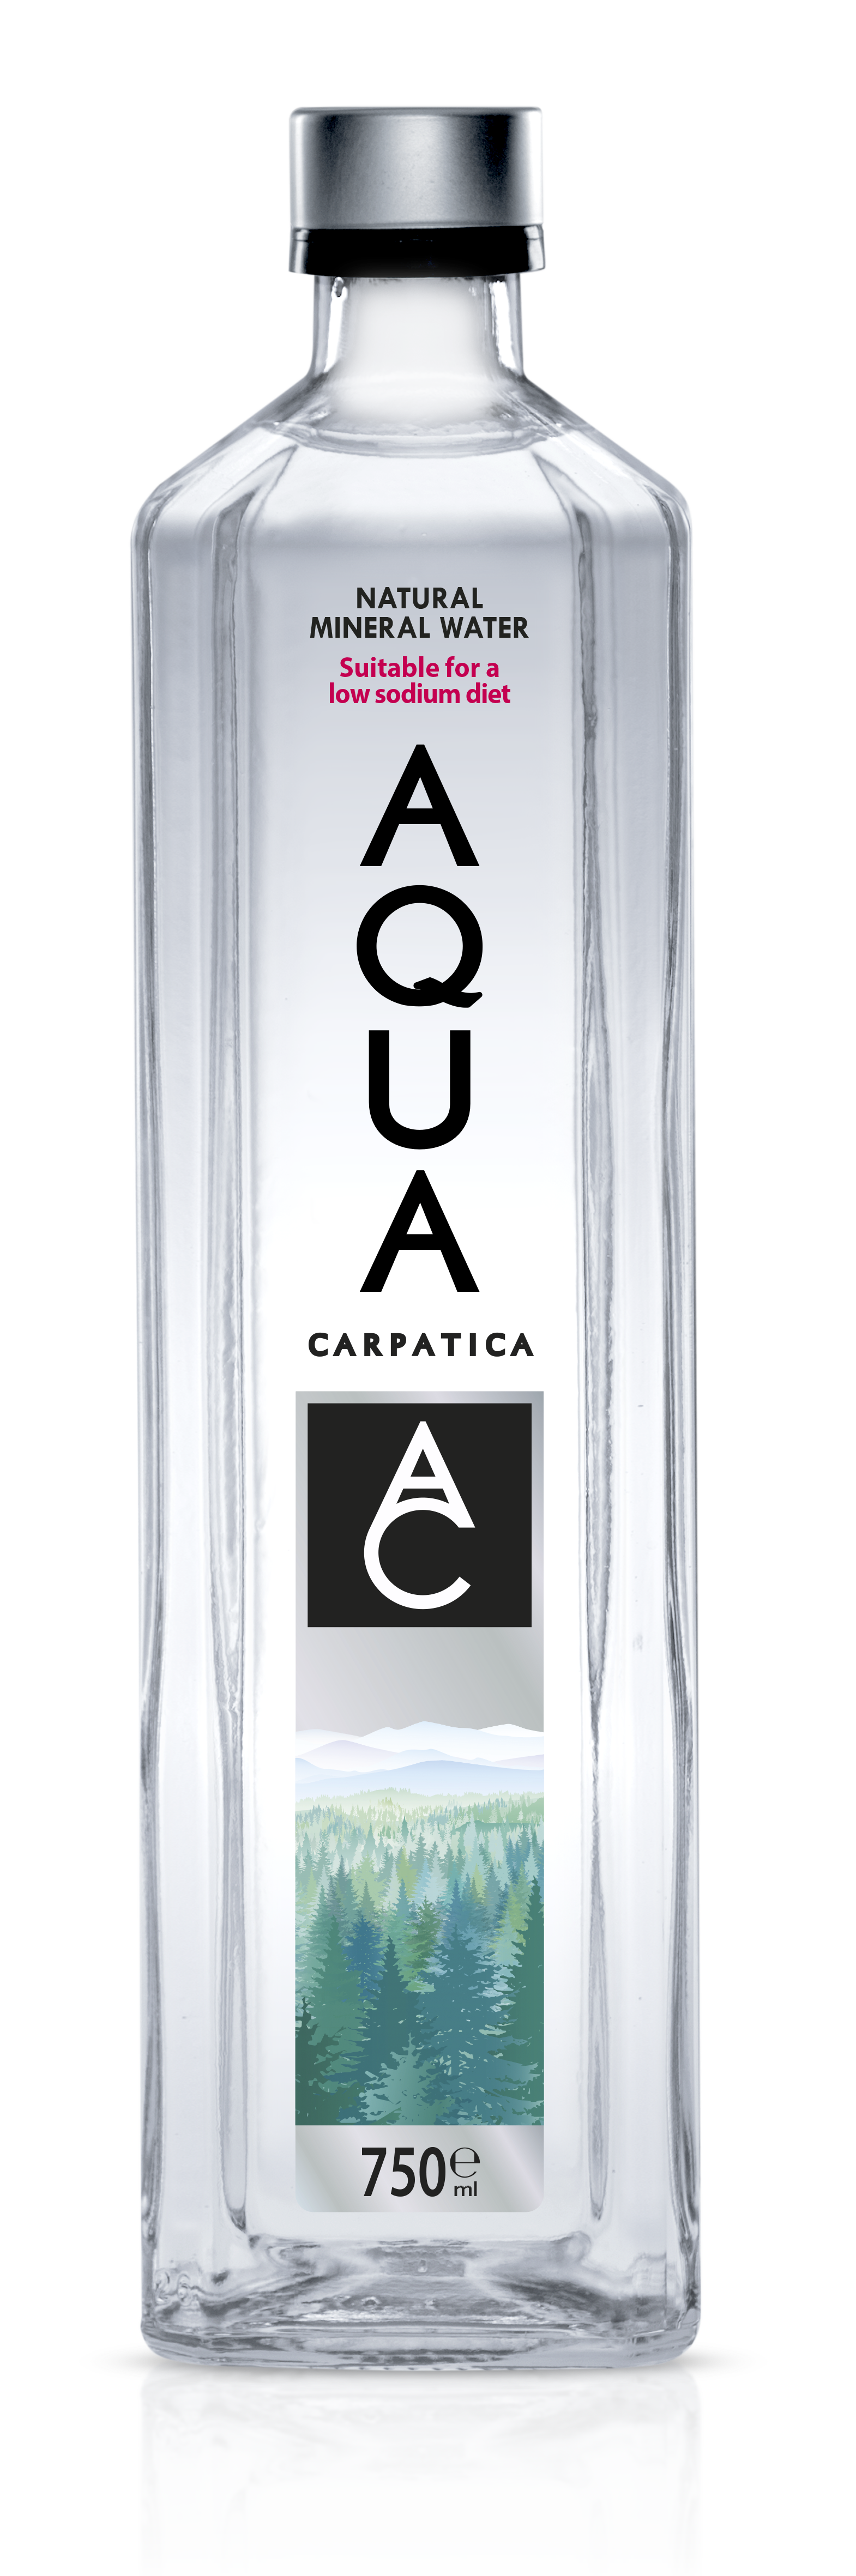 Aqua Carpatica Still Glass 750ml